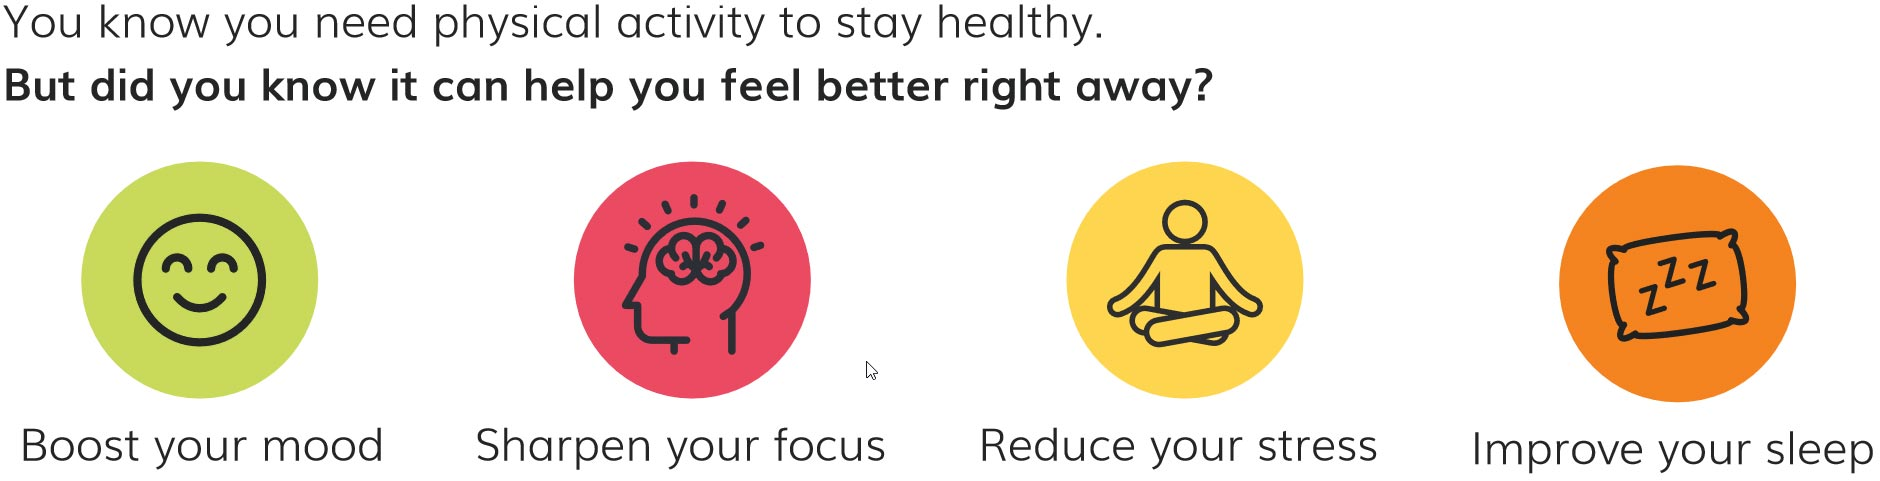 You know you need physical activity to stay healthy. But did you know it can help you feel better right away? Boost you mood. Sharpen your focus. Reduce your stress. Improve your sleep.